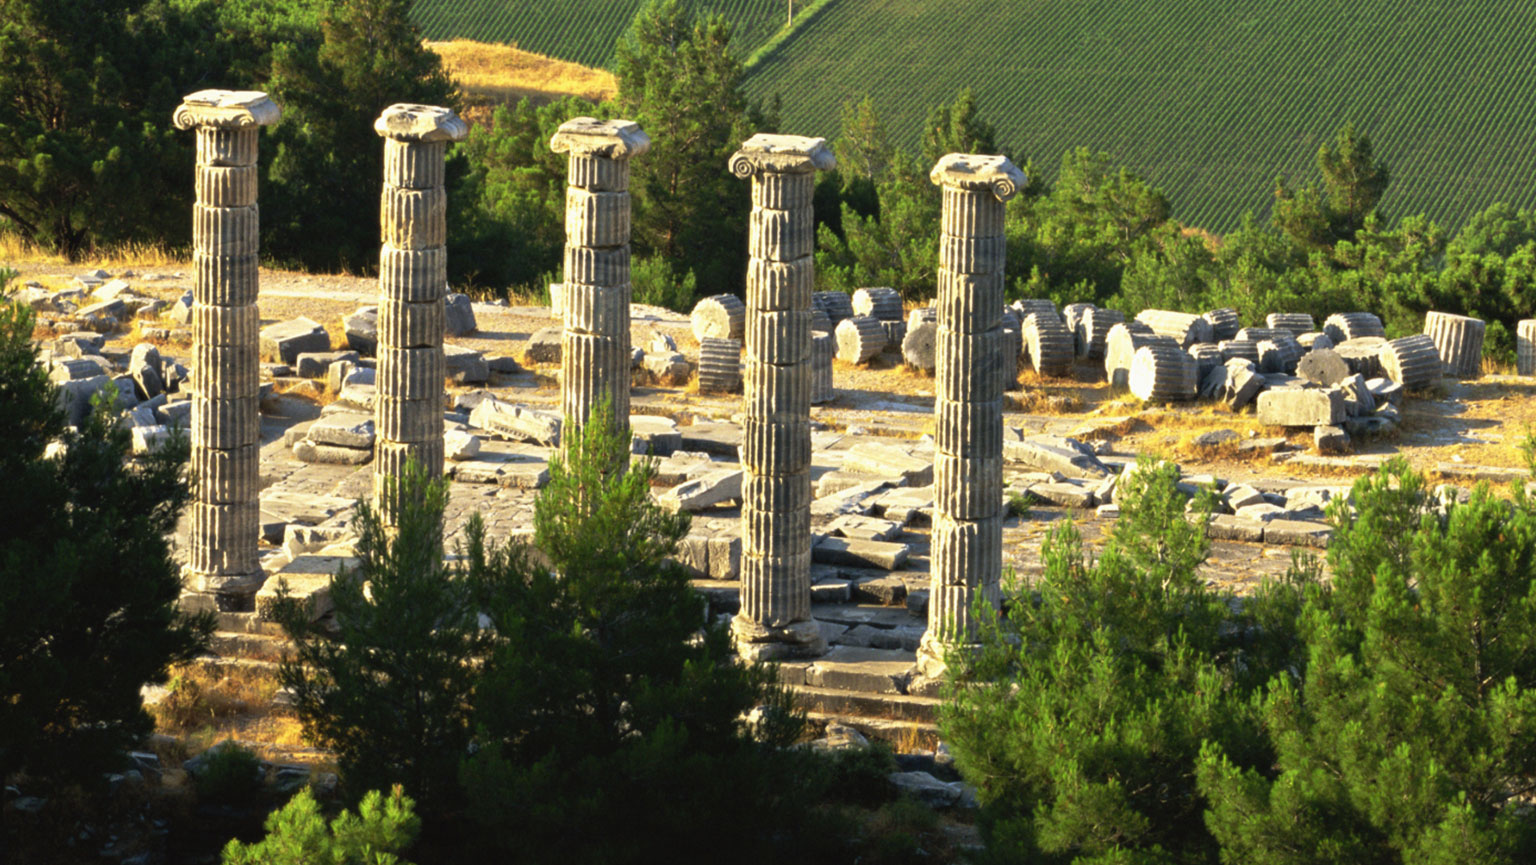 Up the Meander River—Priene to Pamukkale